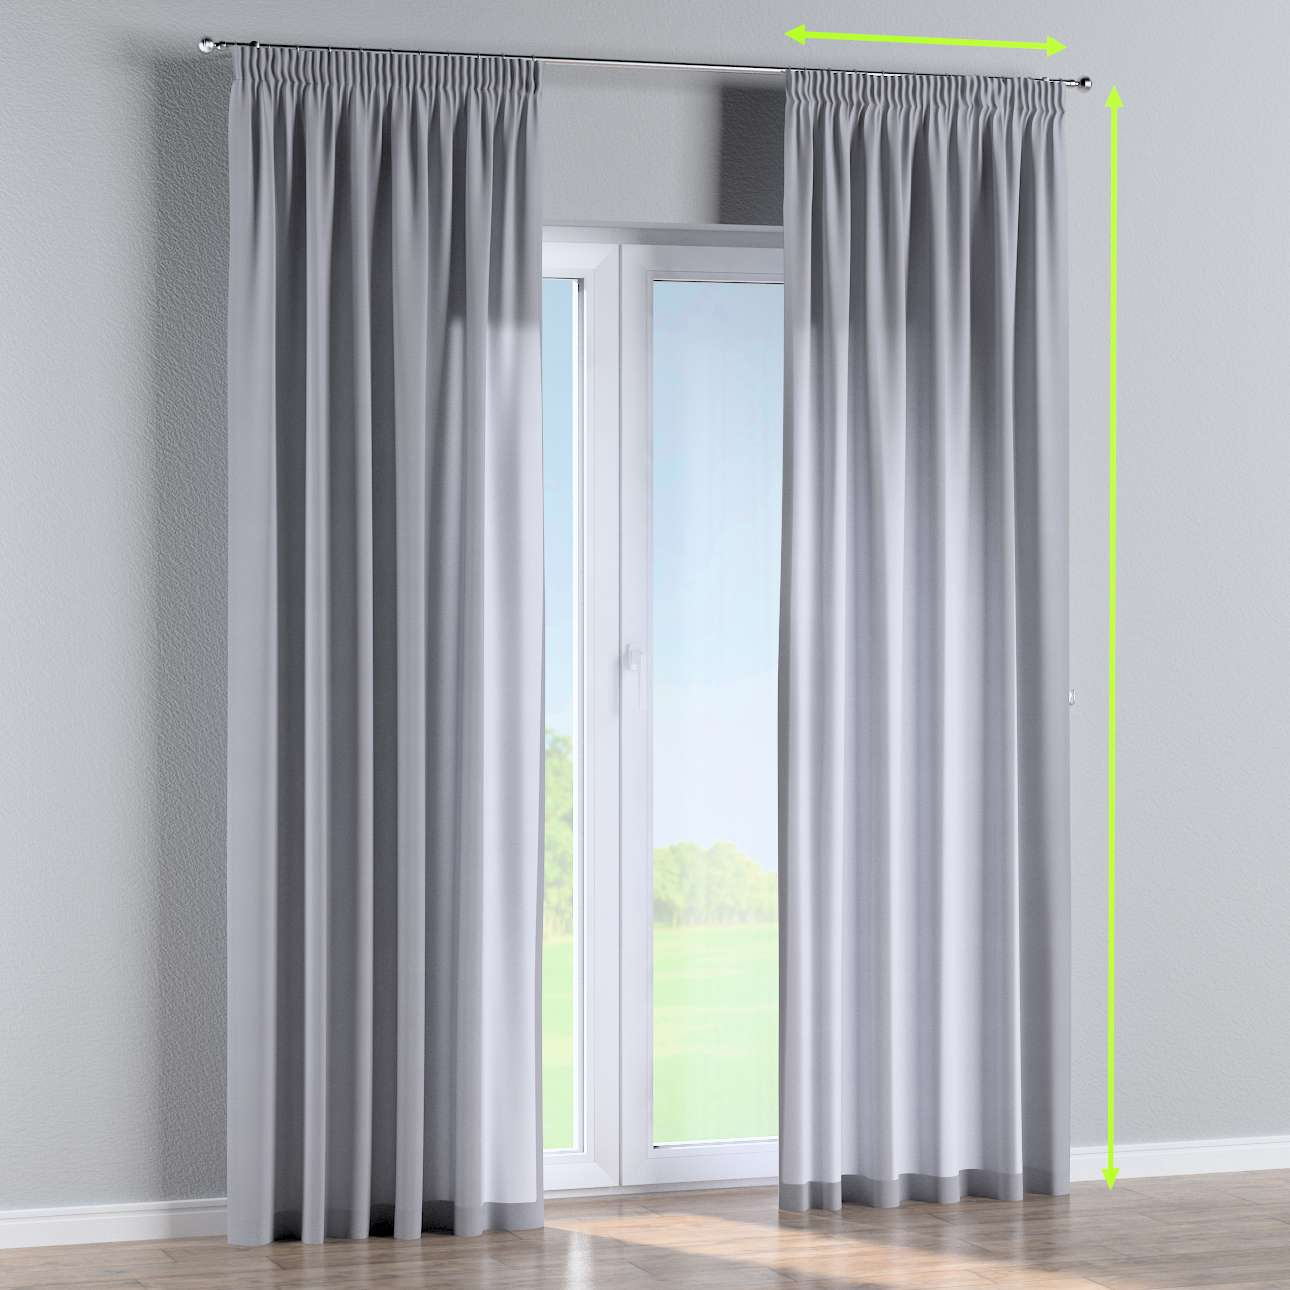 Pencil pleat curtain in collection Jupiter, fabric: 127-92